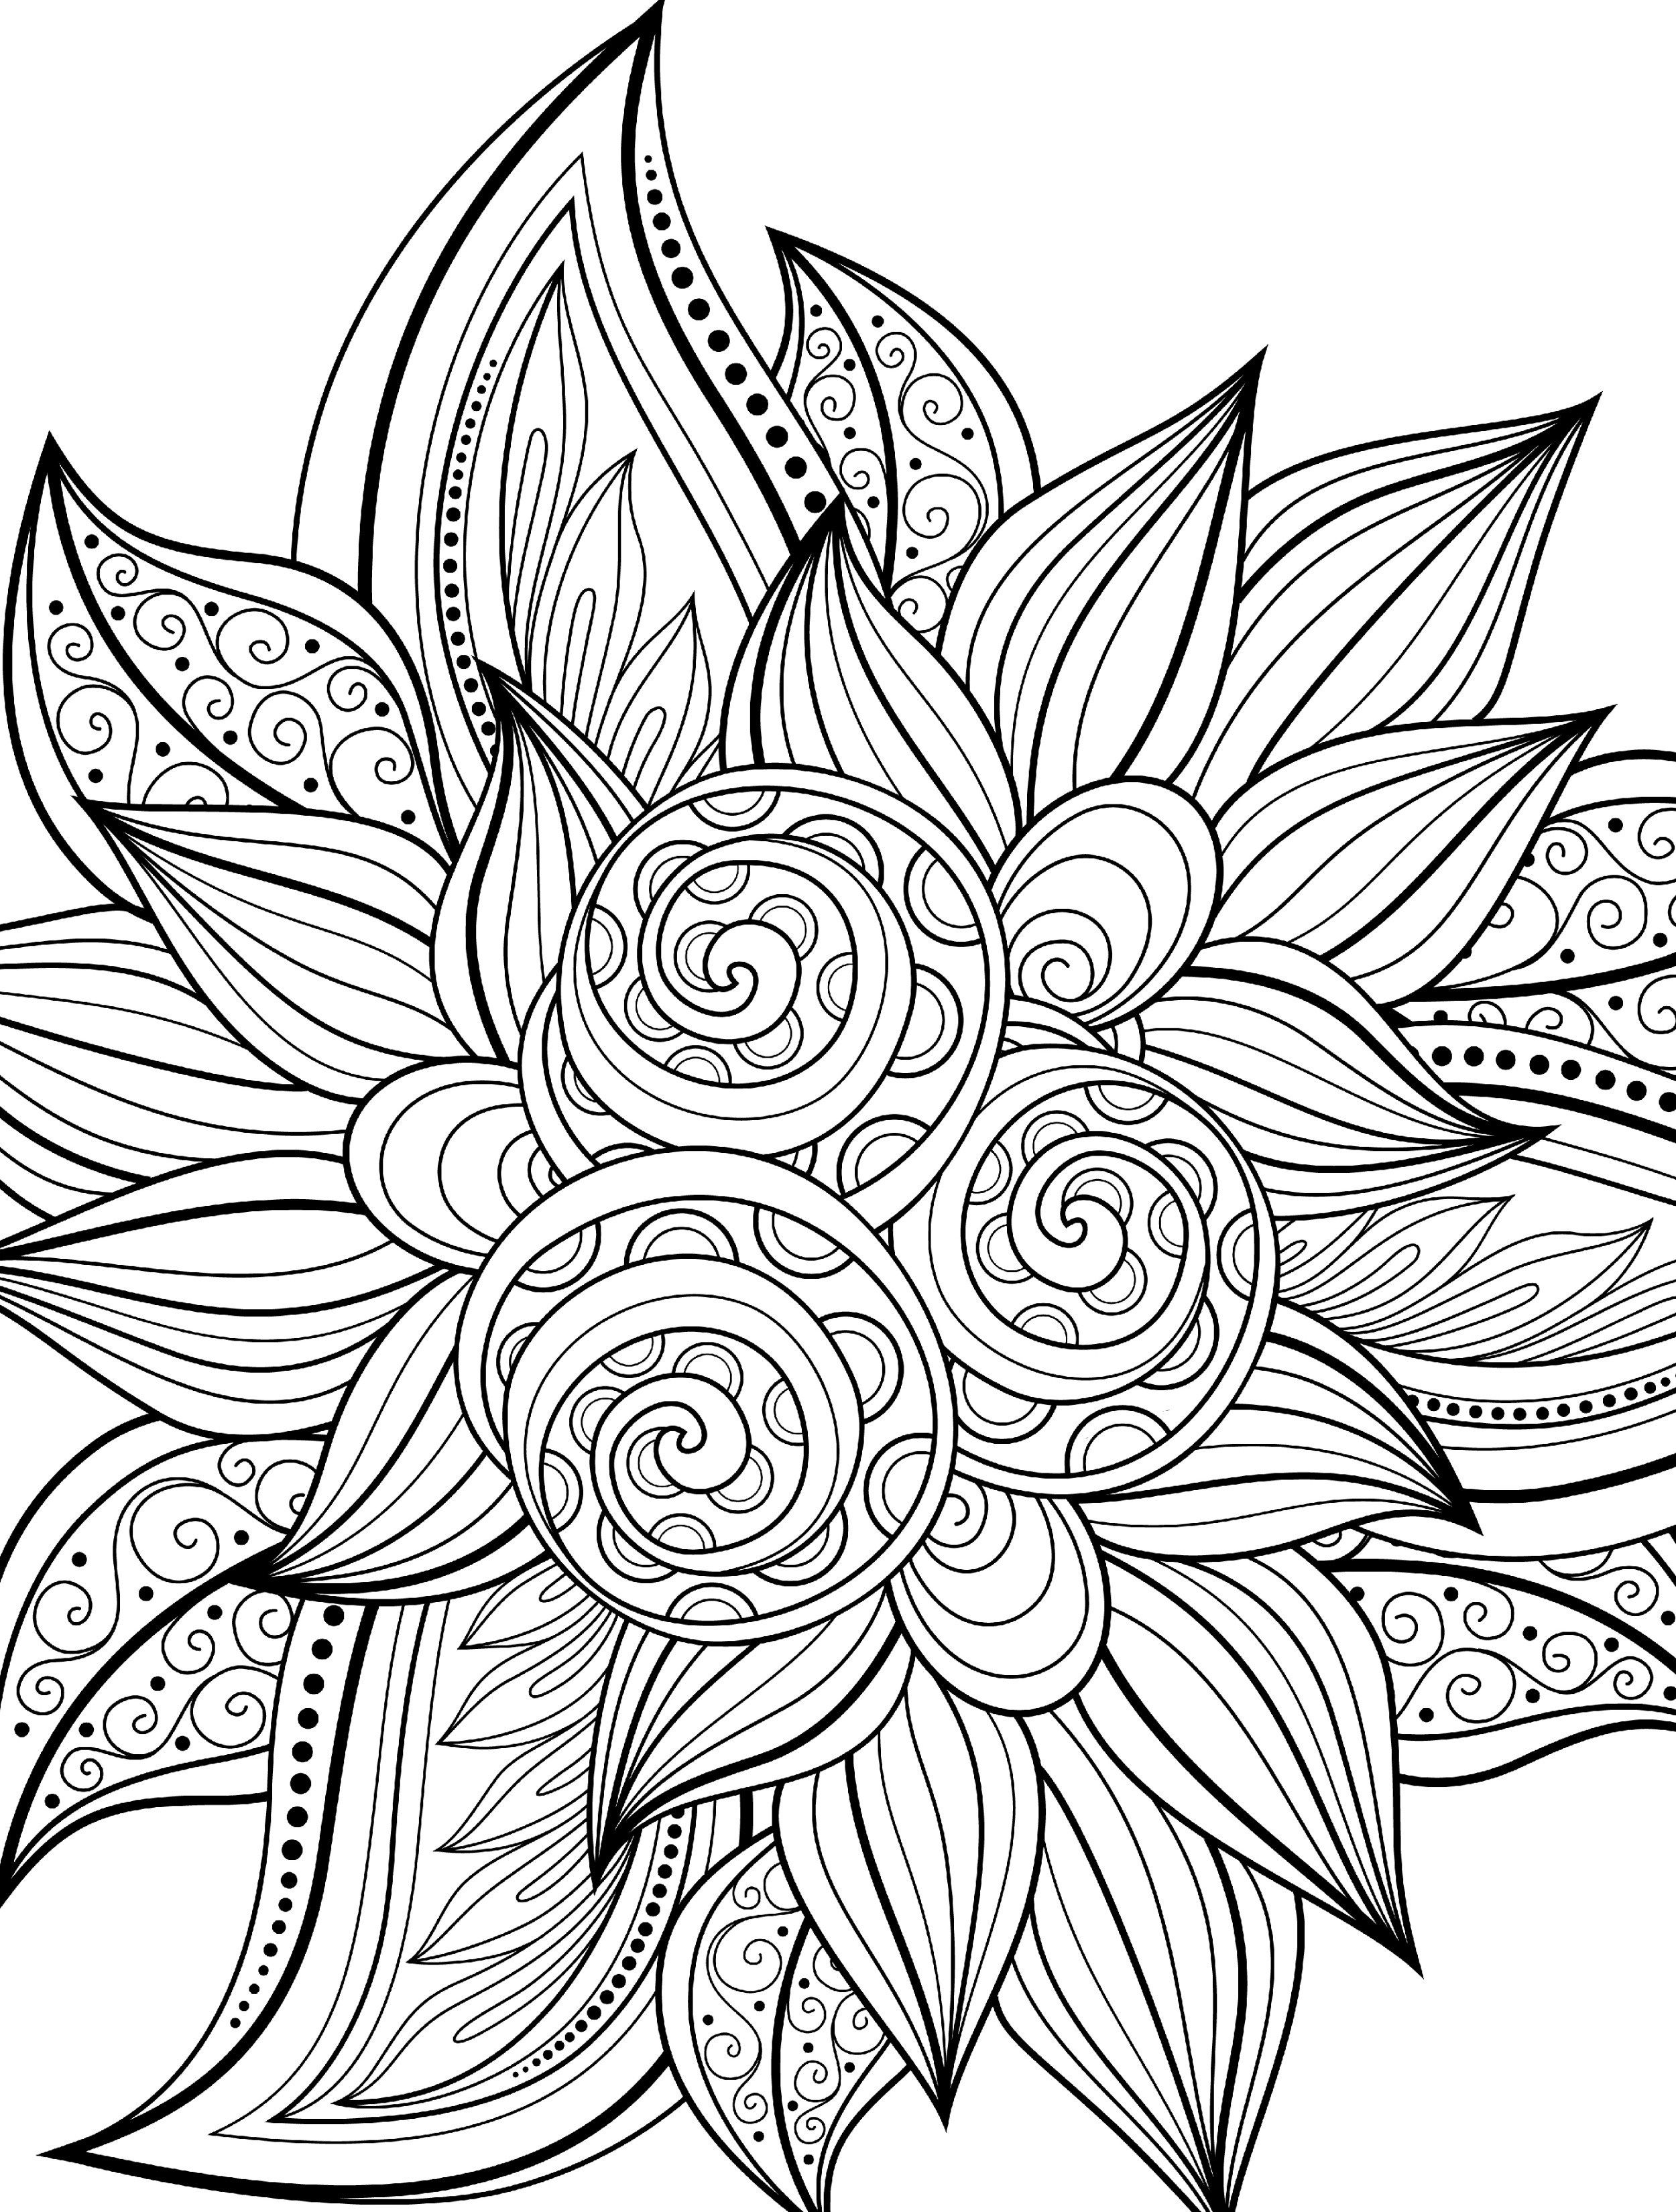 cool printable coloring page small | Free Therapy | Pinterest ...